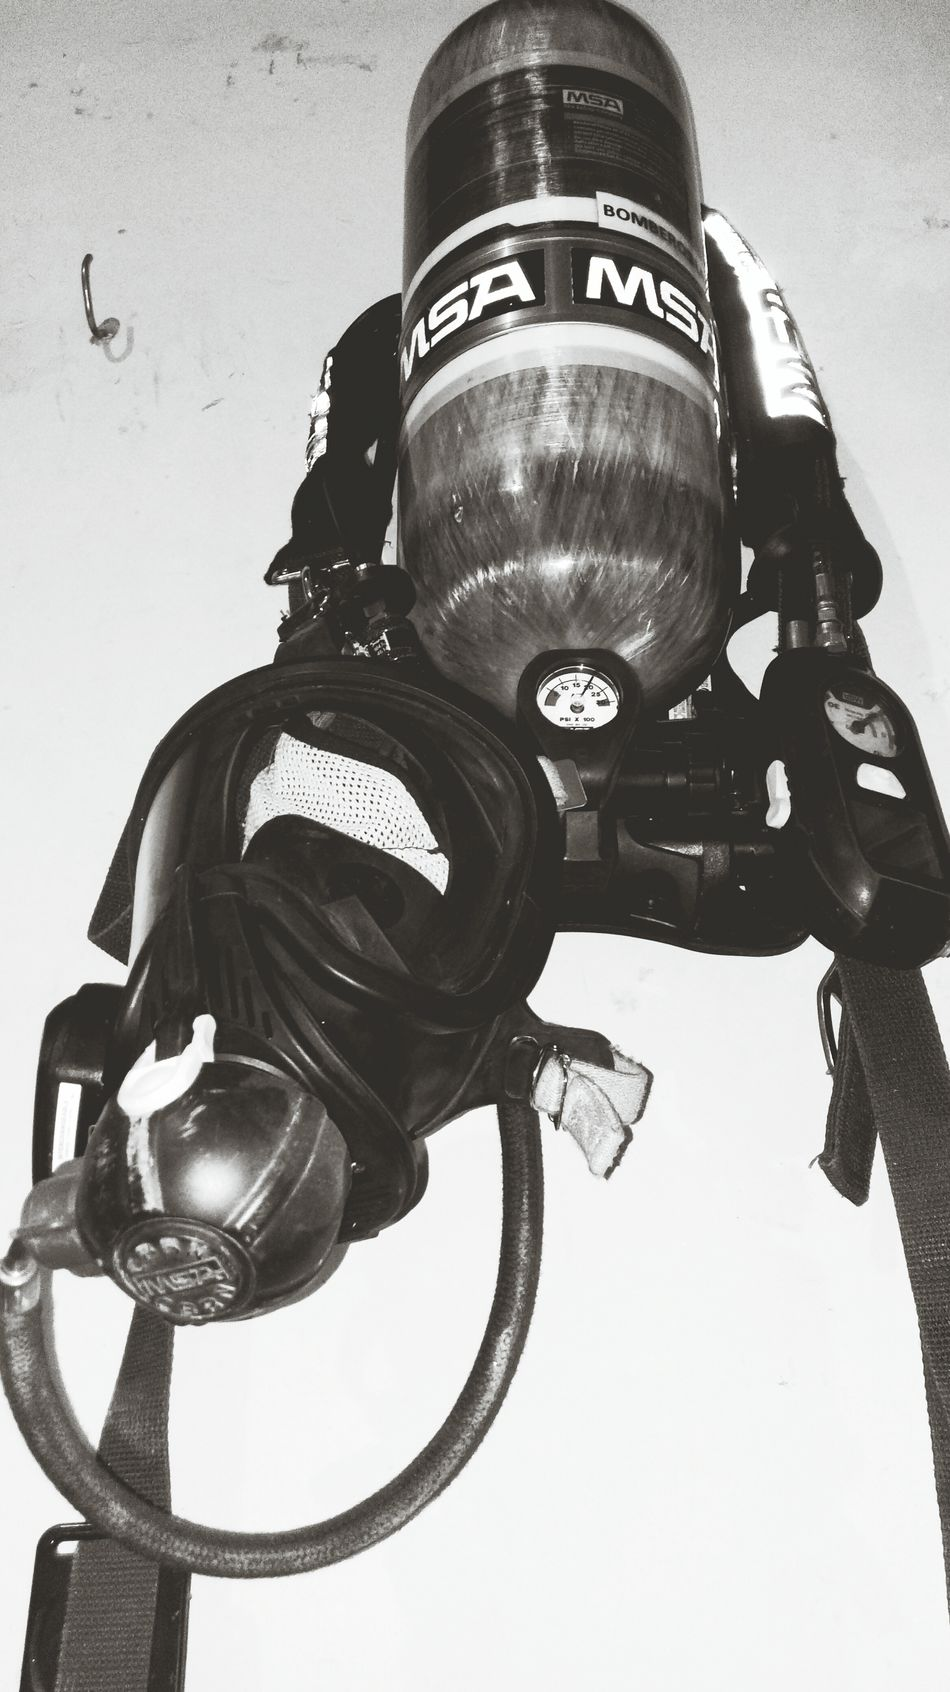 Firefighter Firedepartment SCBA Scba Mask MSA Alarm Firealarm Guardianocturna Emergency Services